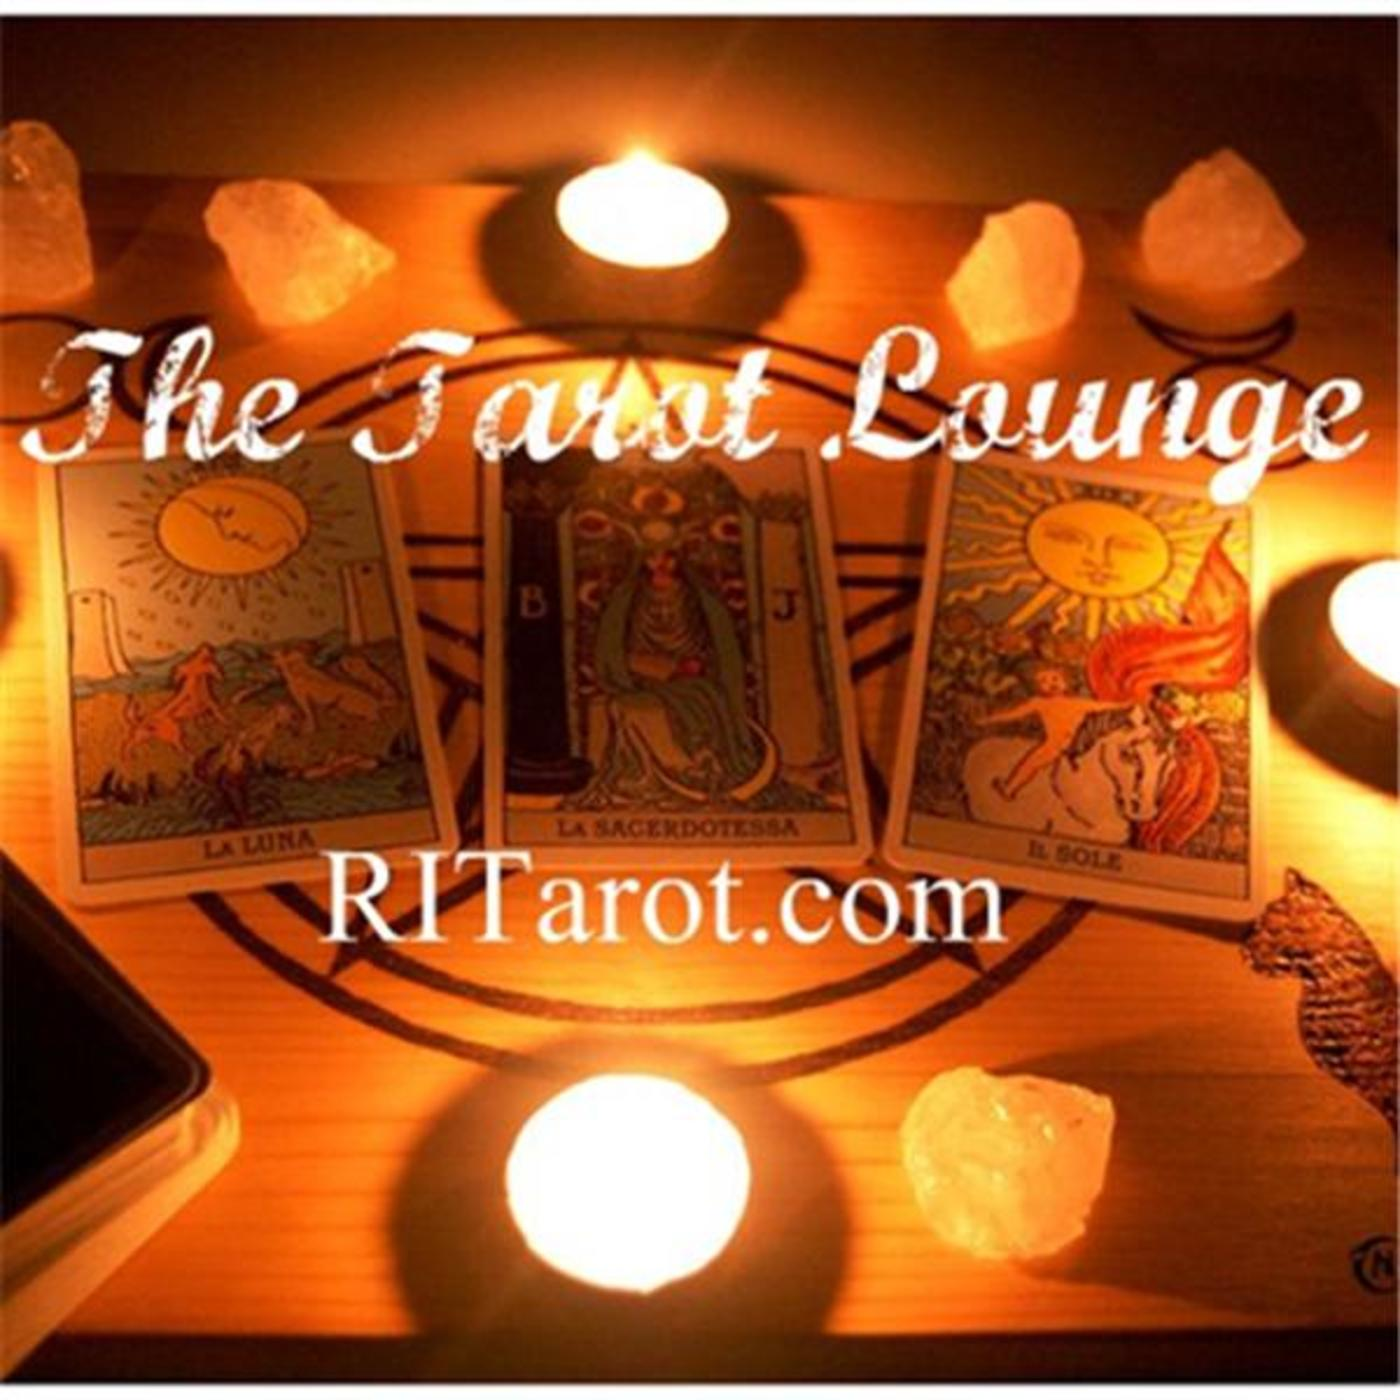 The Tarot Lounge